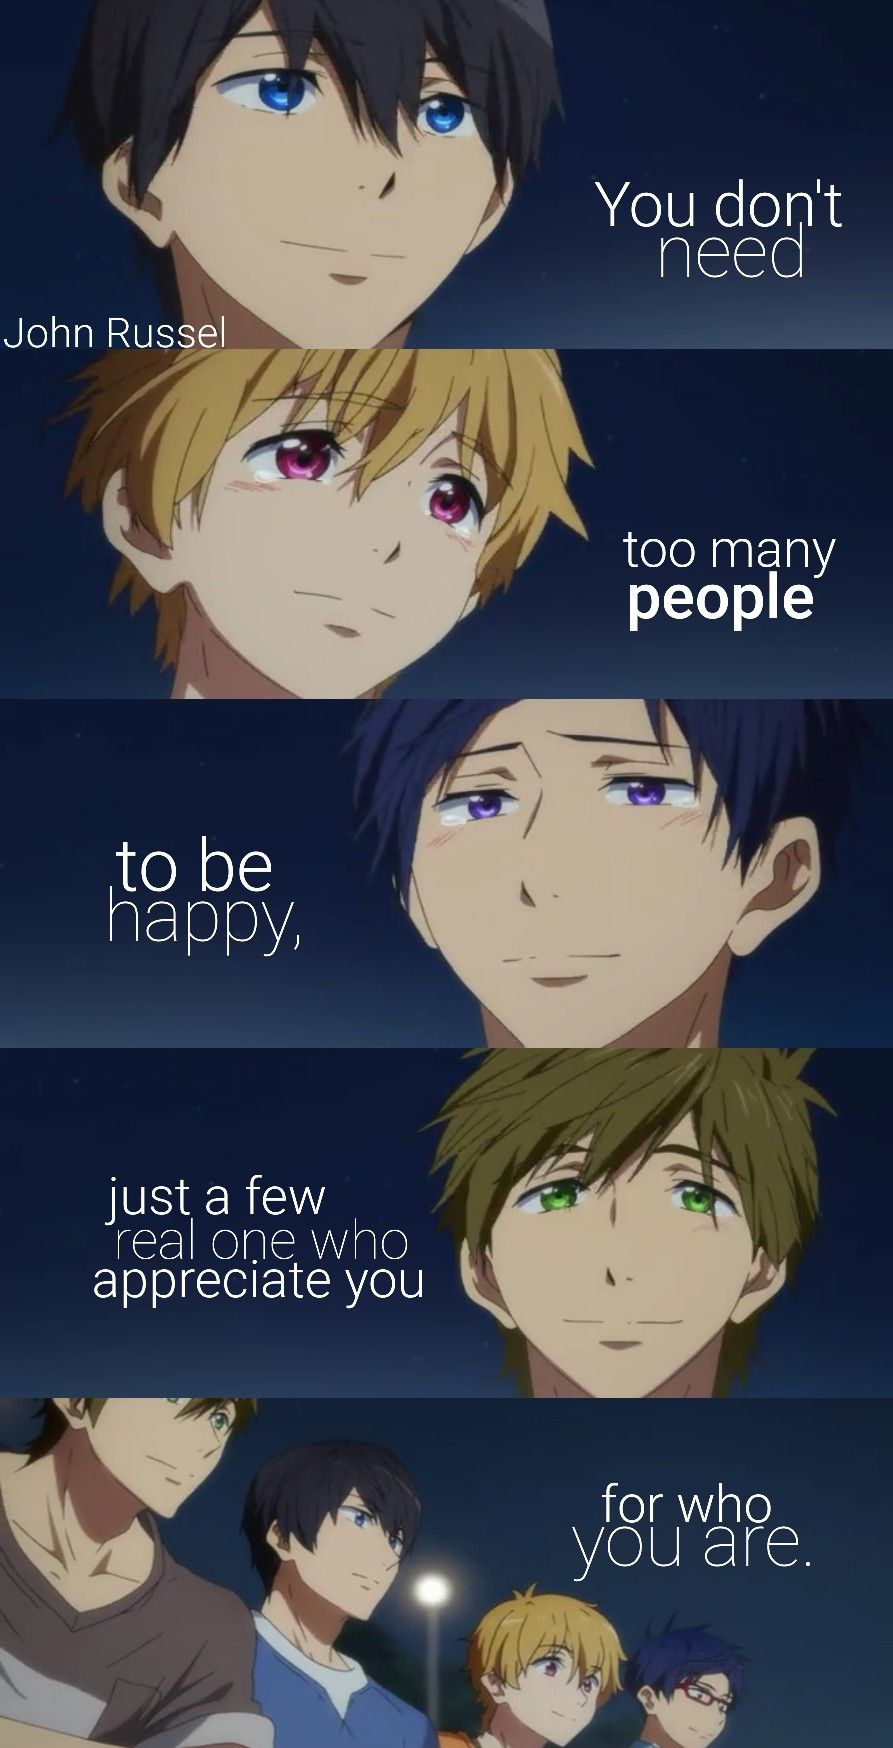 Pin by Toshiyuki Tsukiko on Anime Quotes in 2020 (With ...